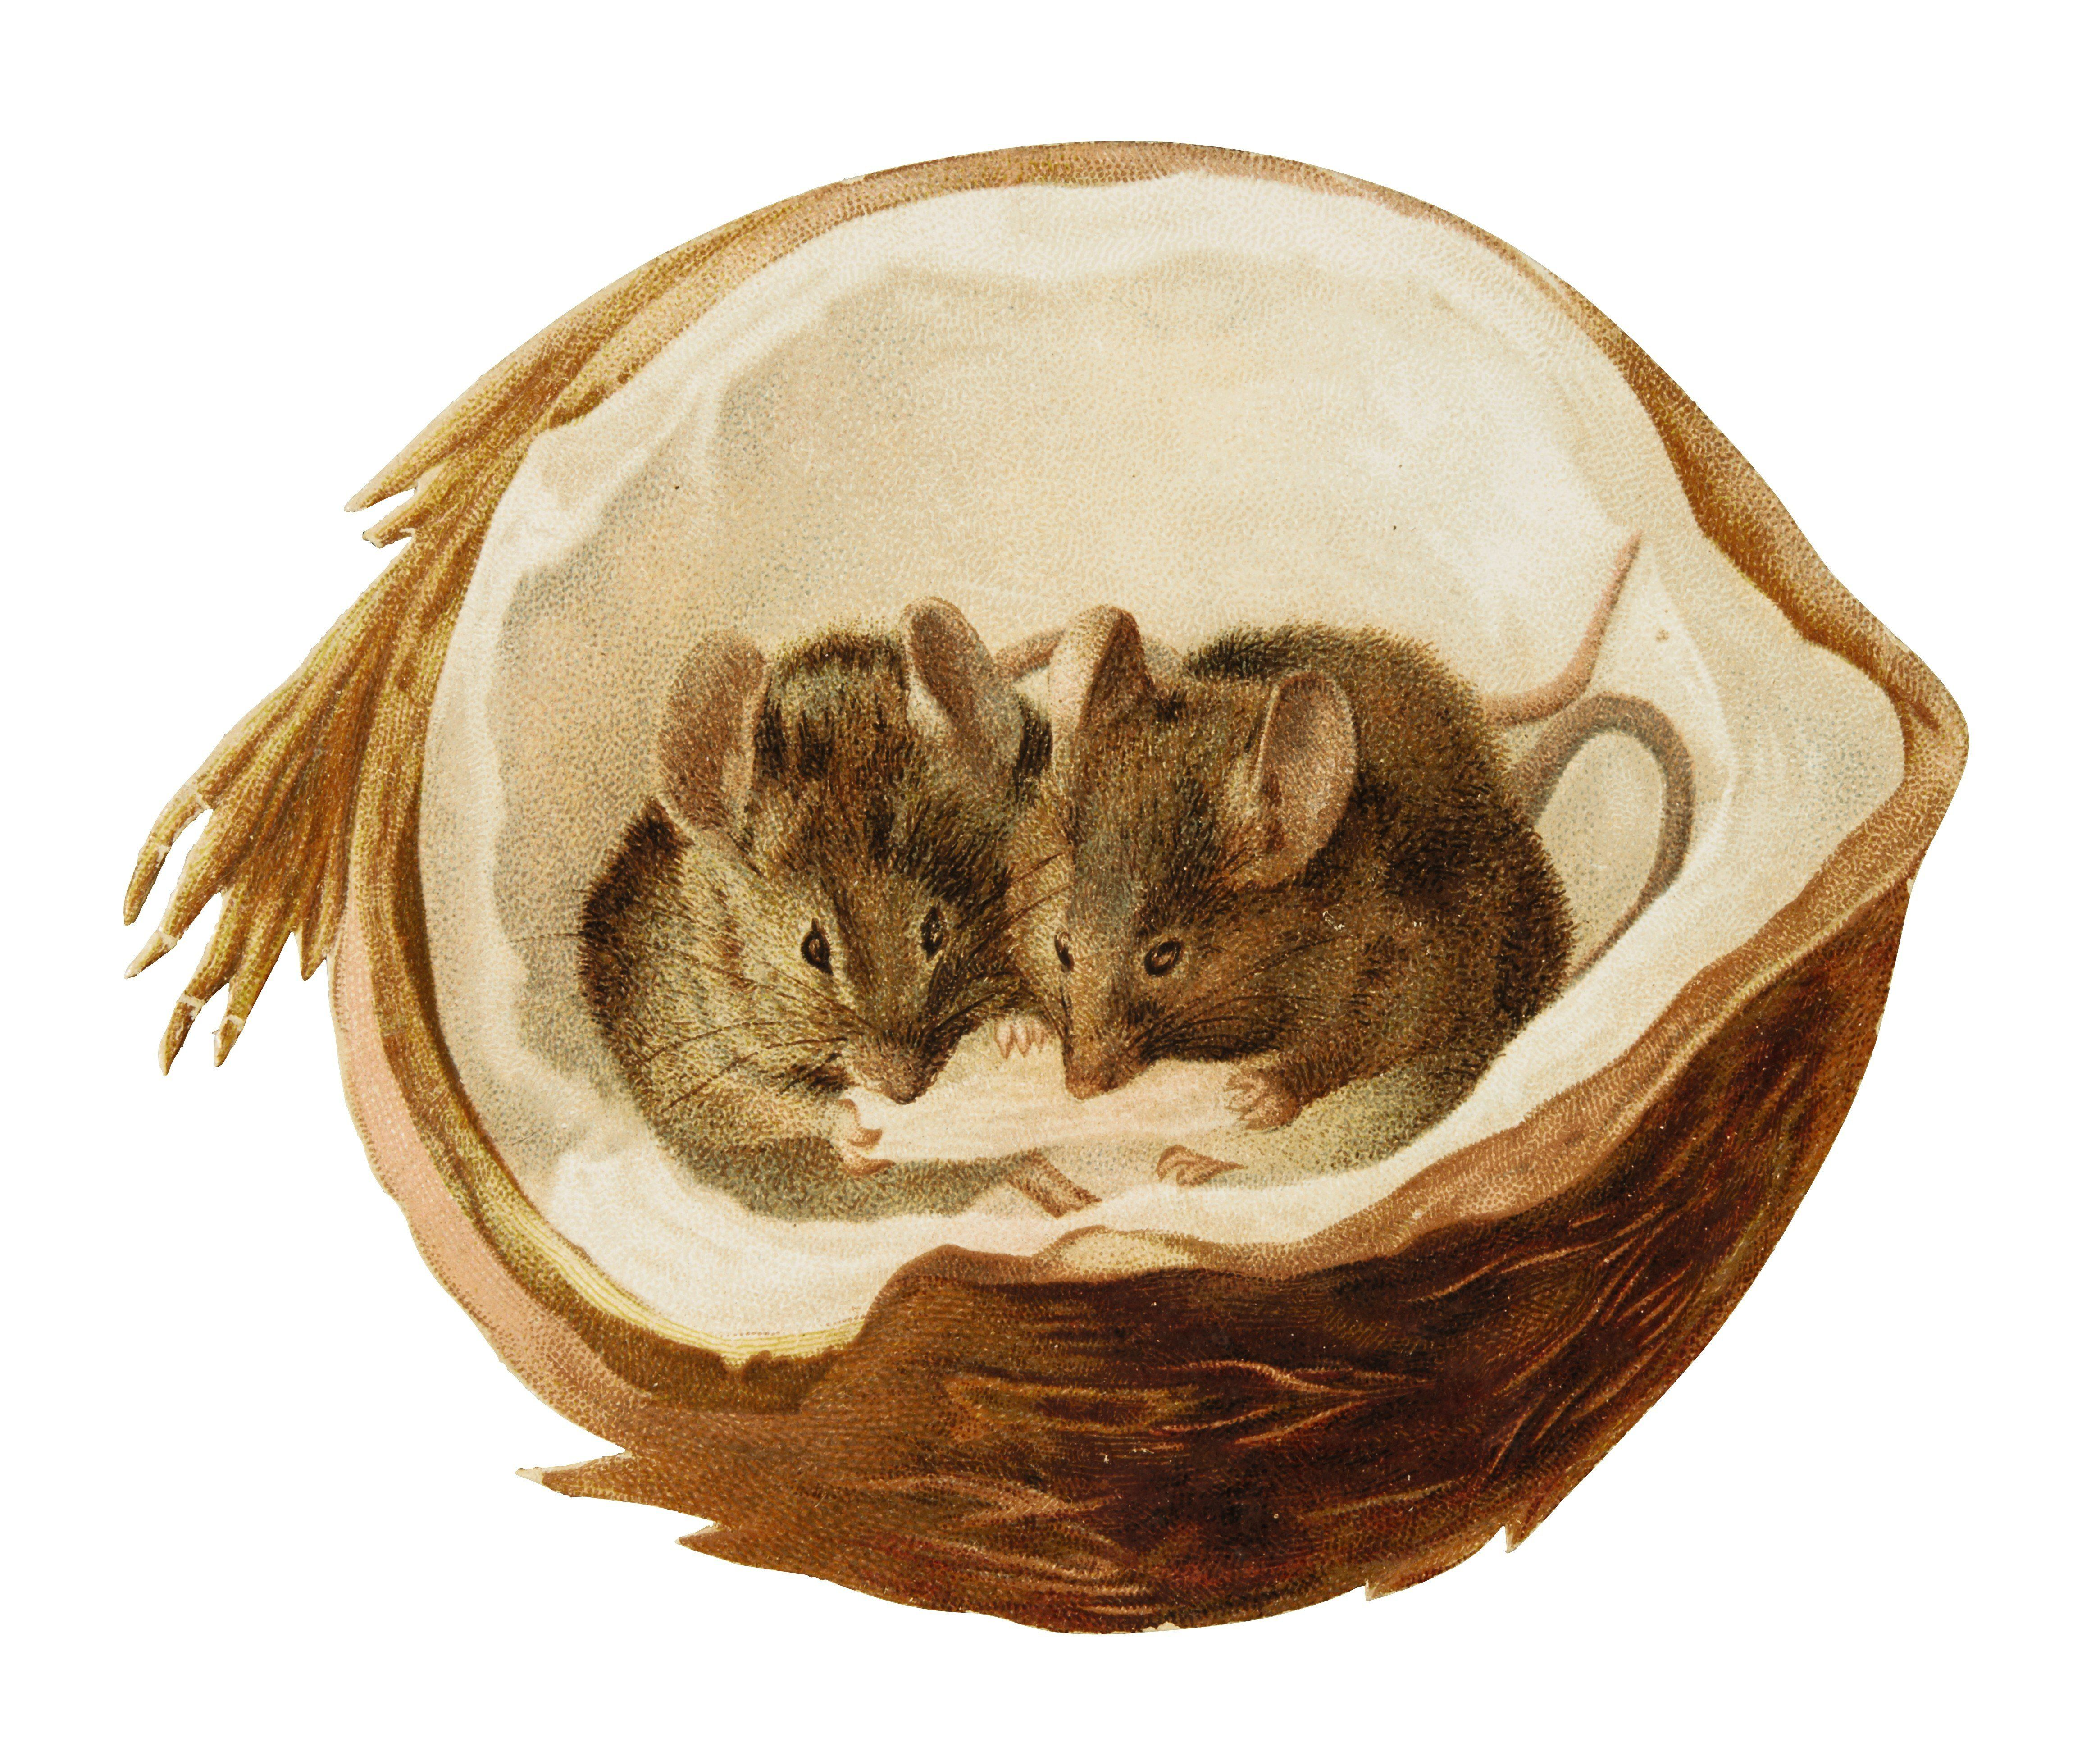 """A """"Mice in a Coconut""""[Hildesheimer and Faulkner, c.1891] card, featuring some of Beatrix Potter's earliest printed work"""